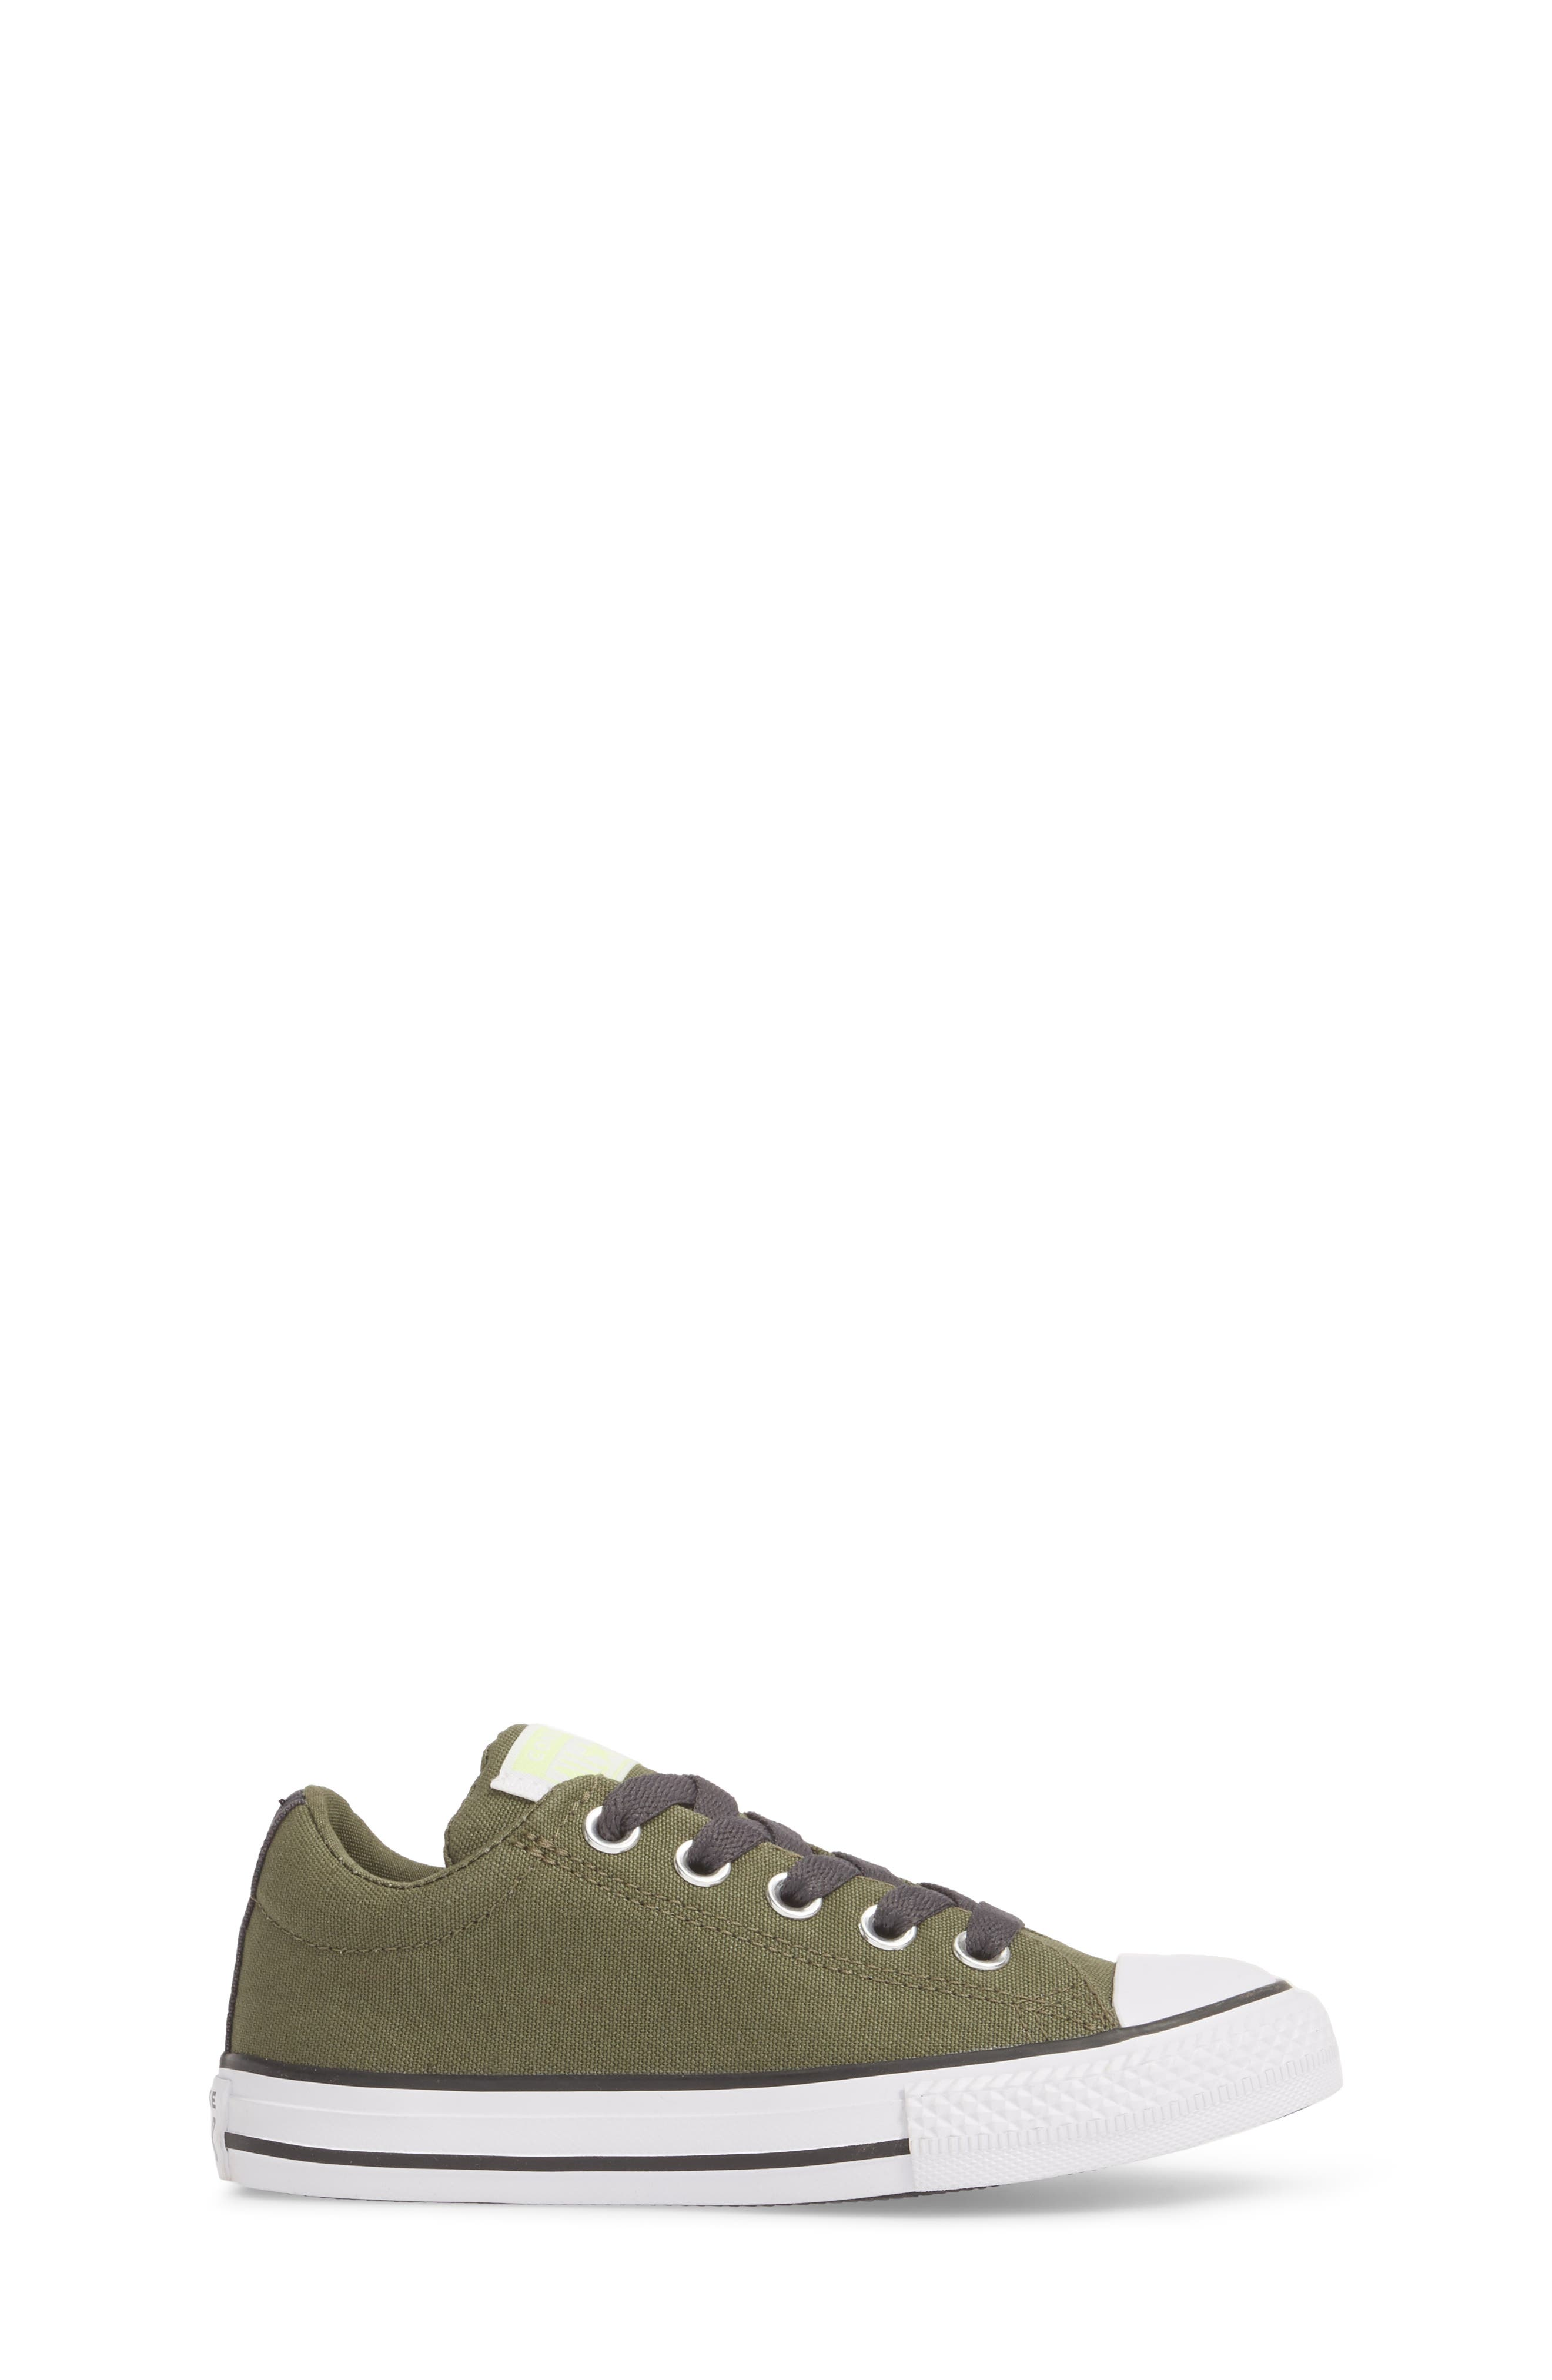 Chuck Taylor<sup>®</sup> All Star<sup>®</sup> Street Slip Low Top Sneaker,                             Alternate thumbnail 3, color,                             322